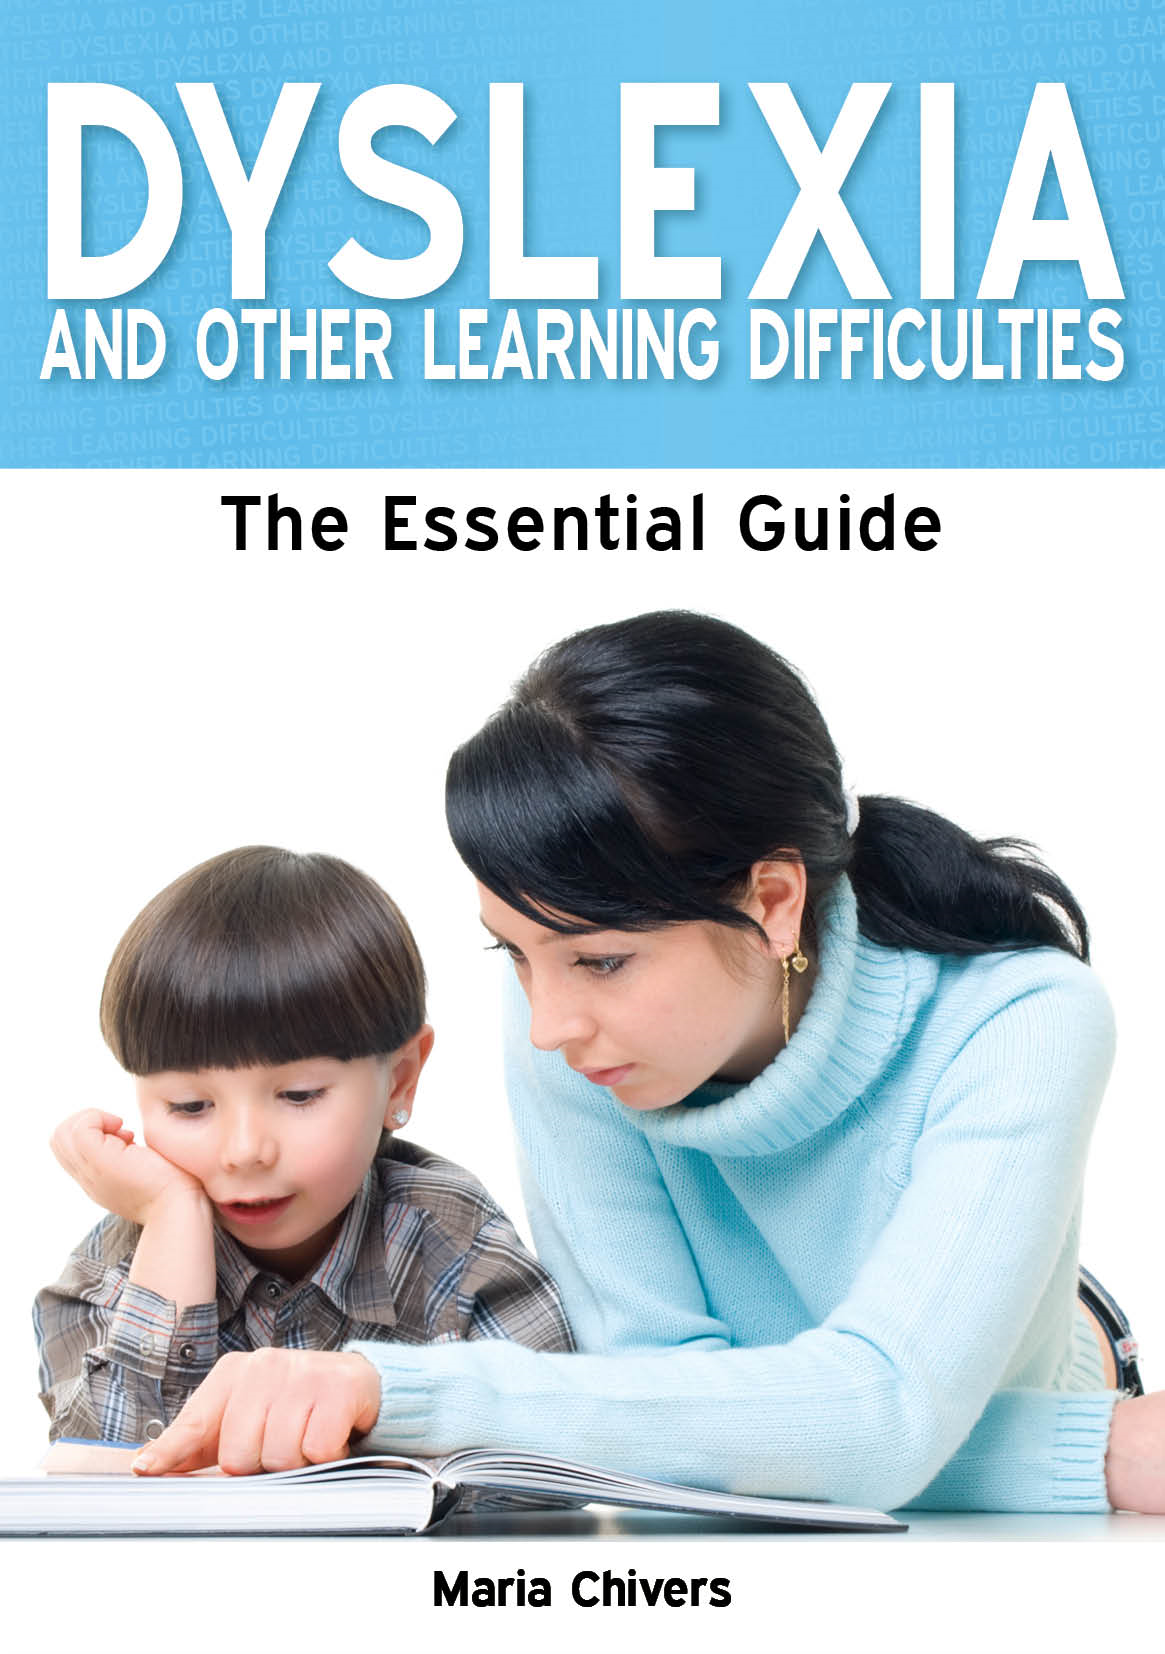 Dyslexia and Other Learning Difficulties: The Essential Guide